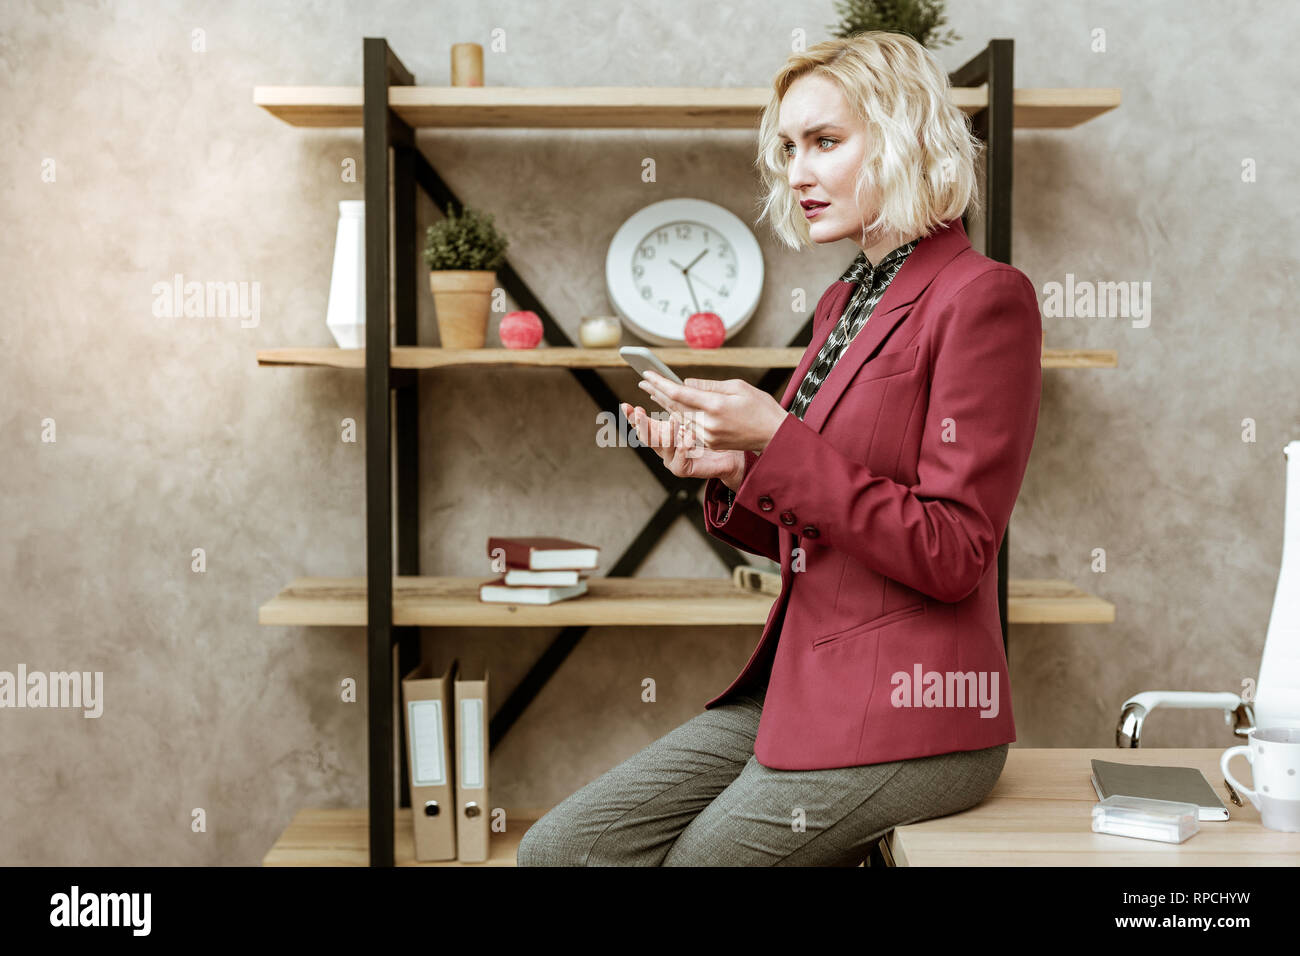 Serious good-looking lady in red outdated jacket leaning on table surface - Stock Image